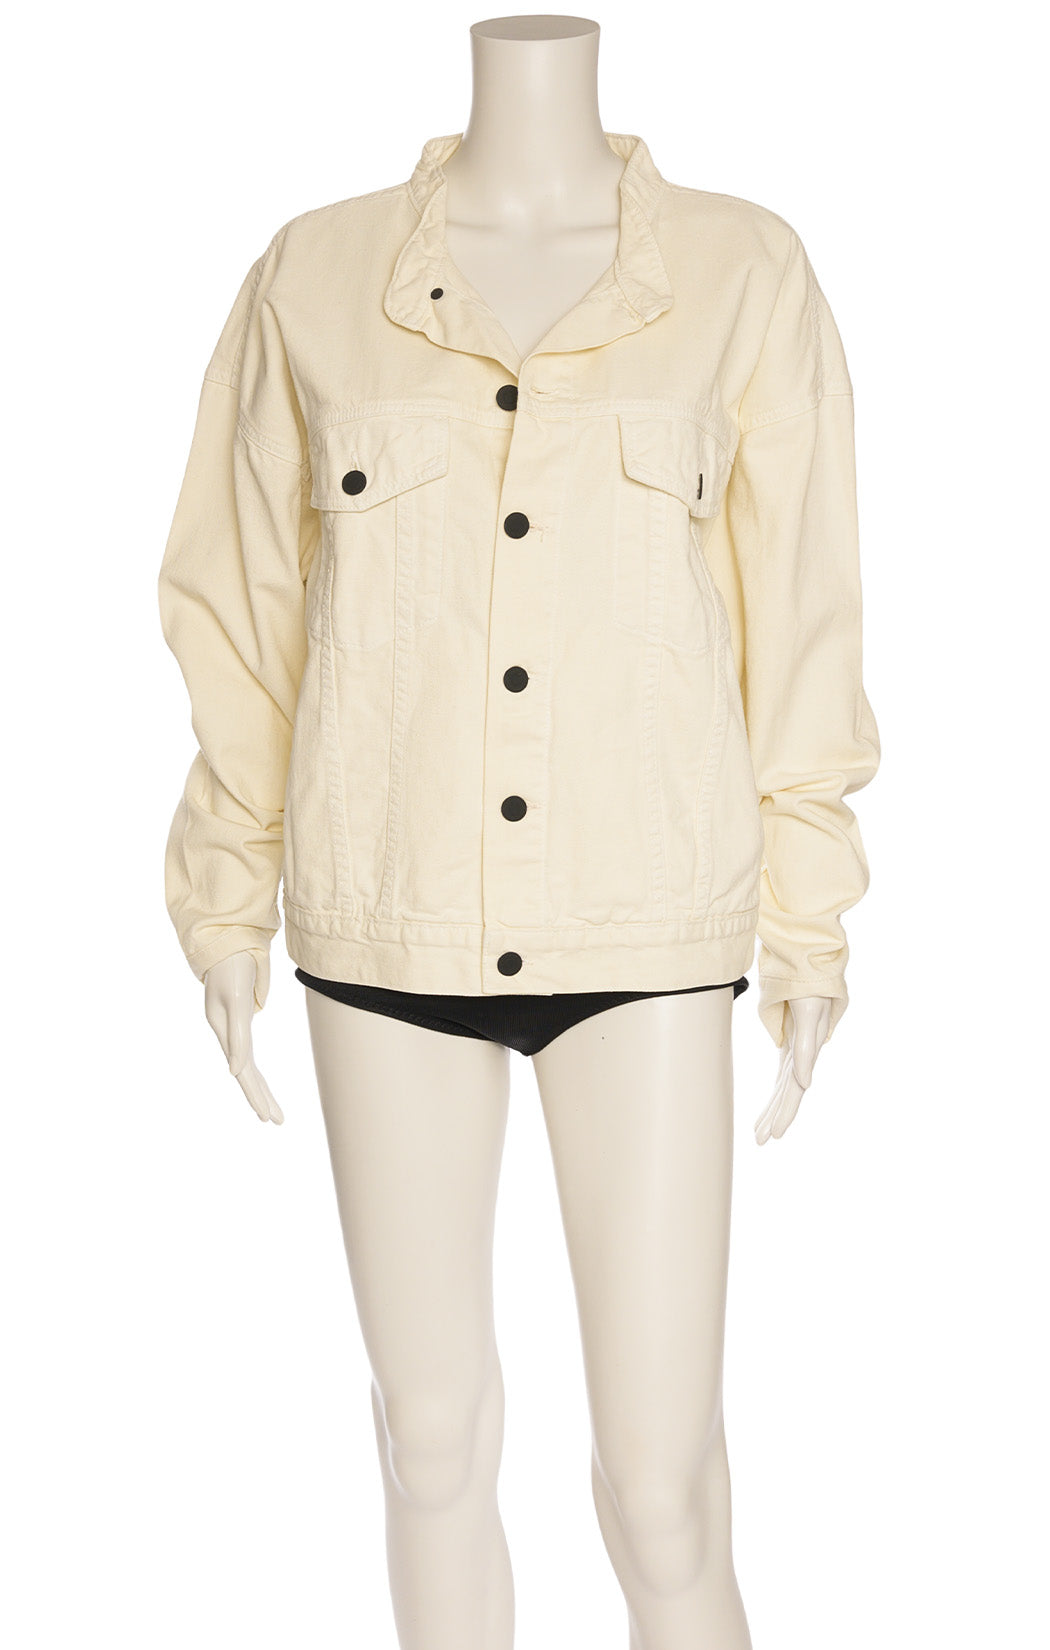 Ivory colored jean jacket with black buttons